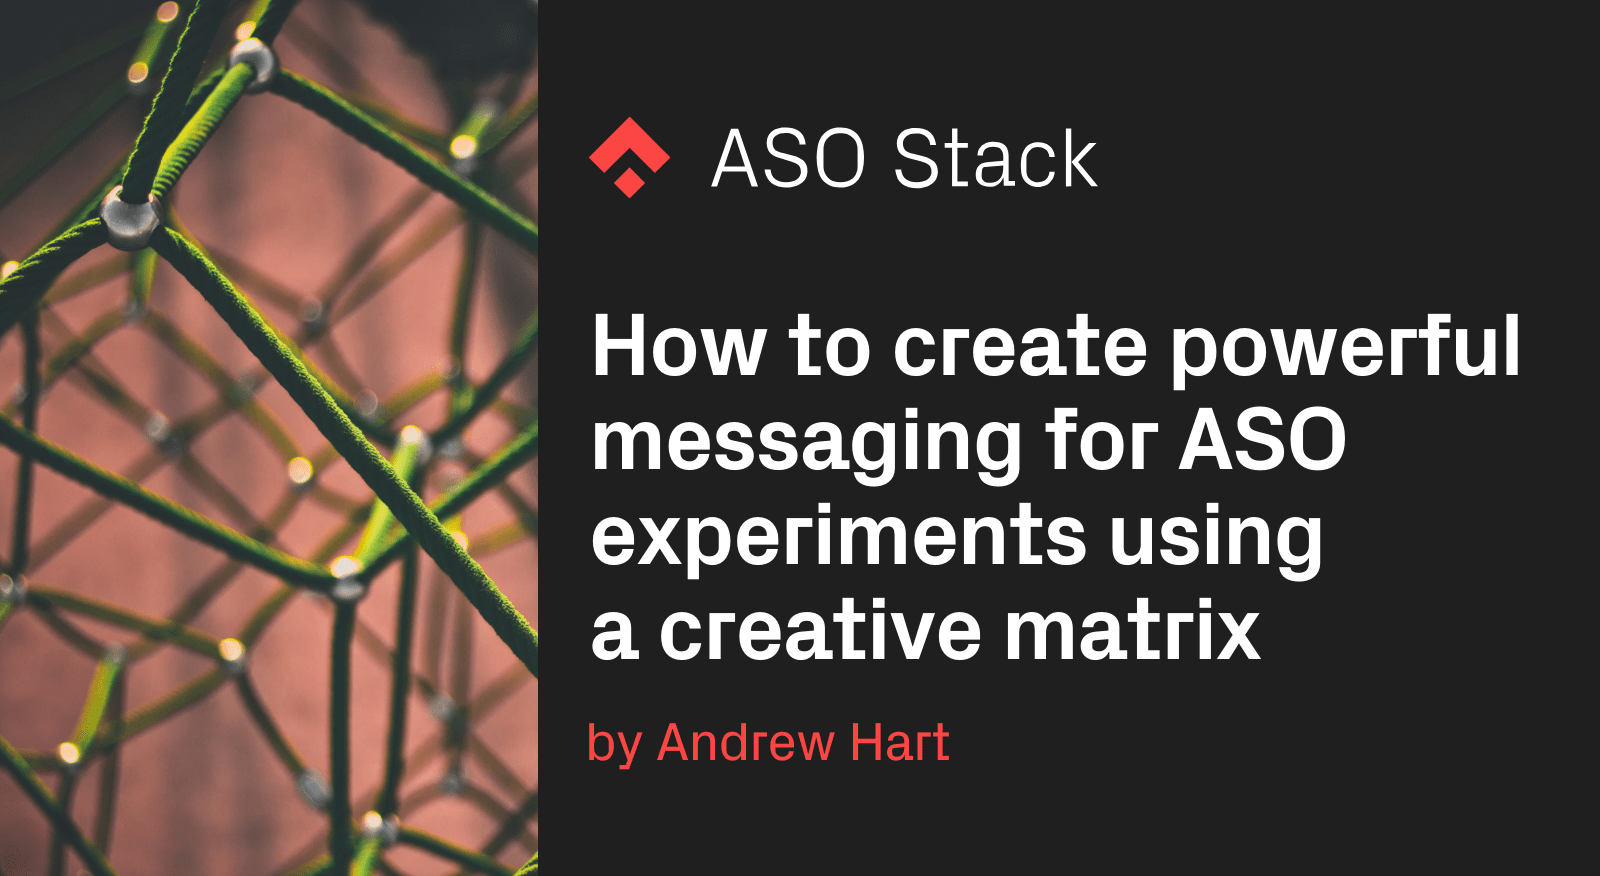 How to create powerful messaging for ASO experiments using a creative matrix